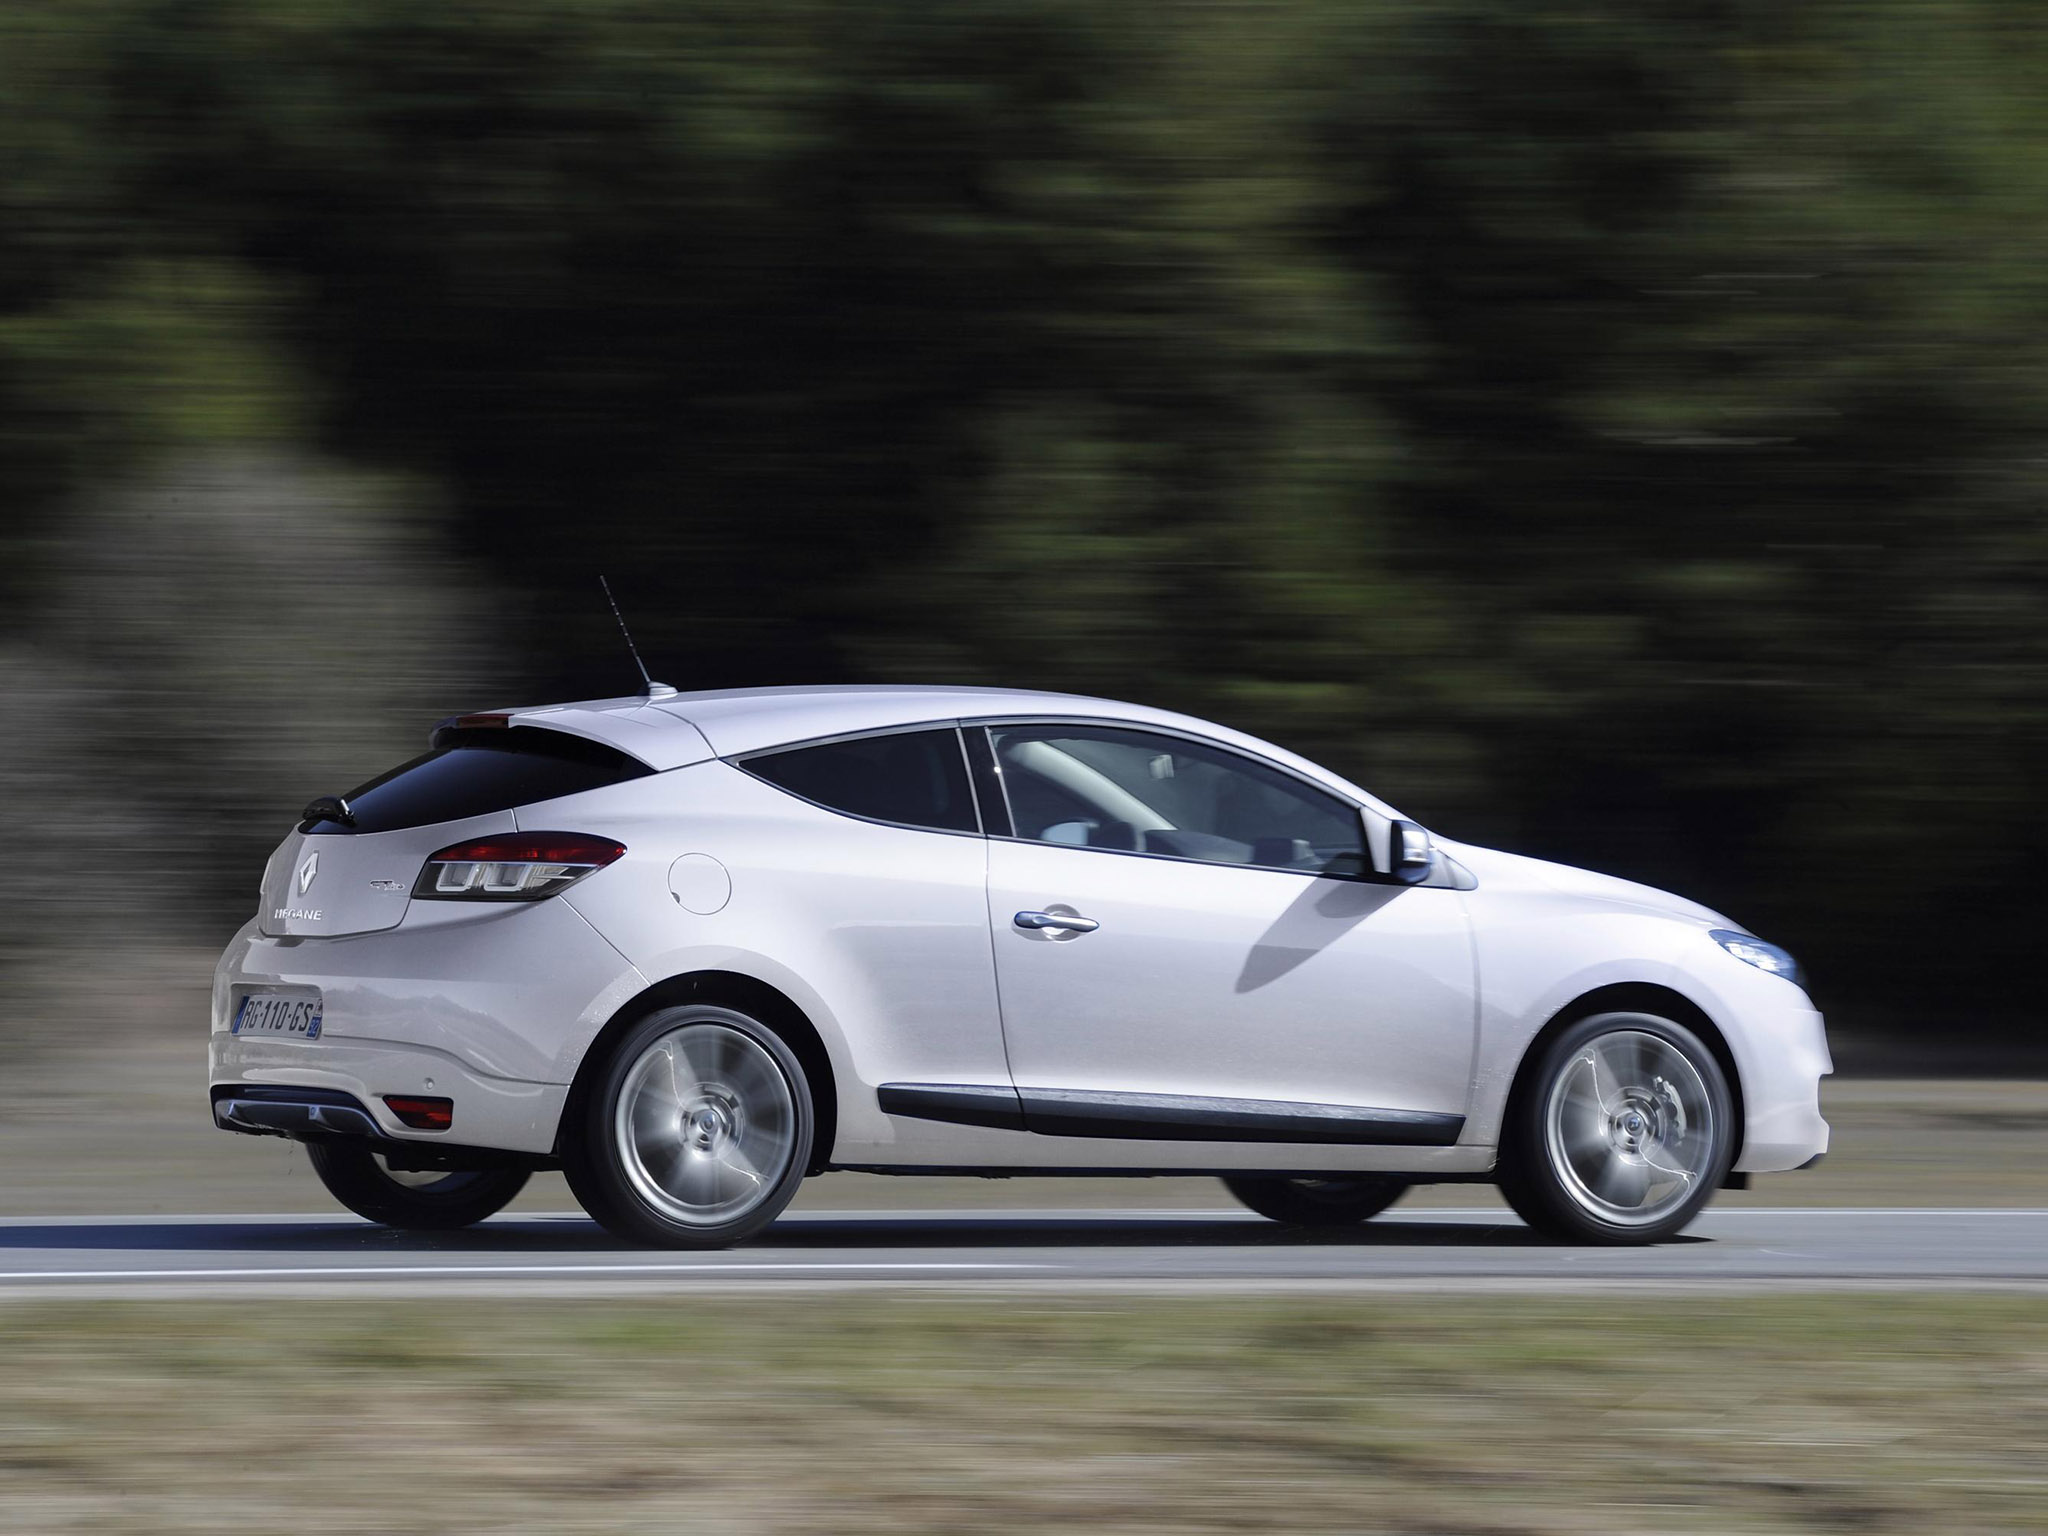 Le Meilleur 2010 Renault Megane Iii Coupe – Pictures Information And Ce Mois Ci